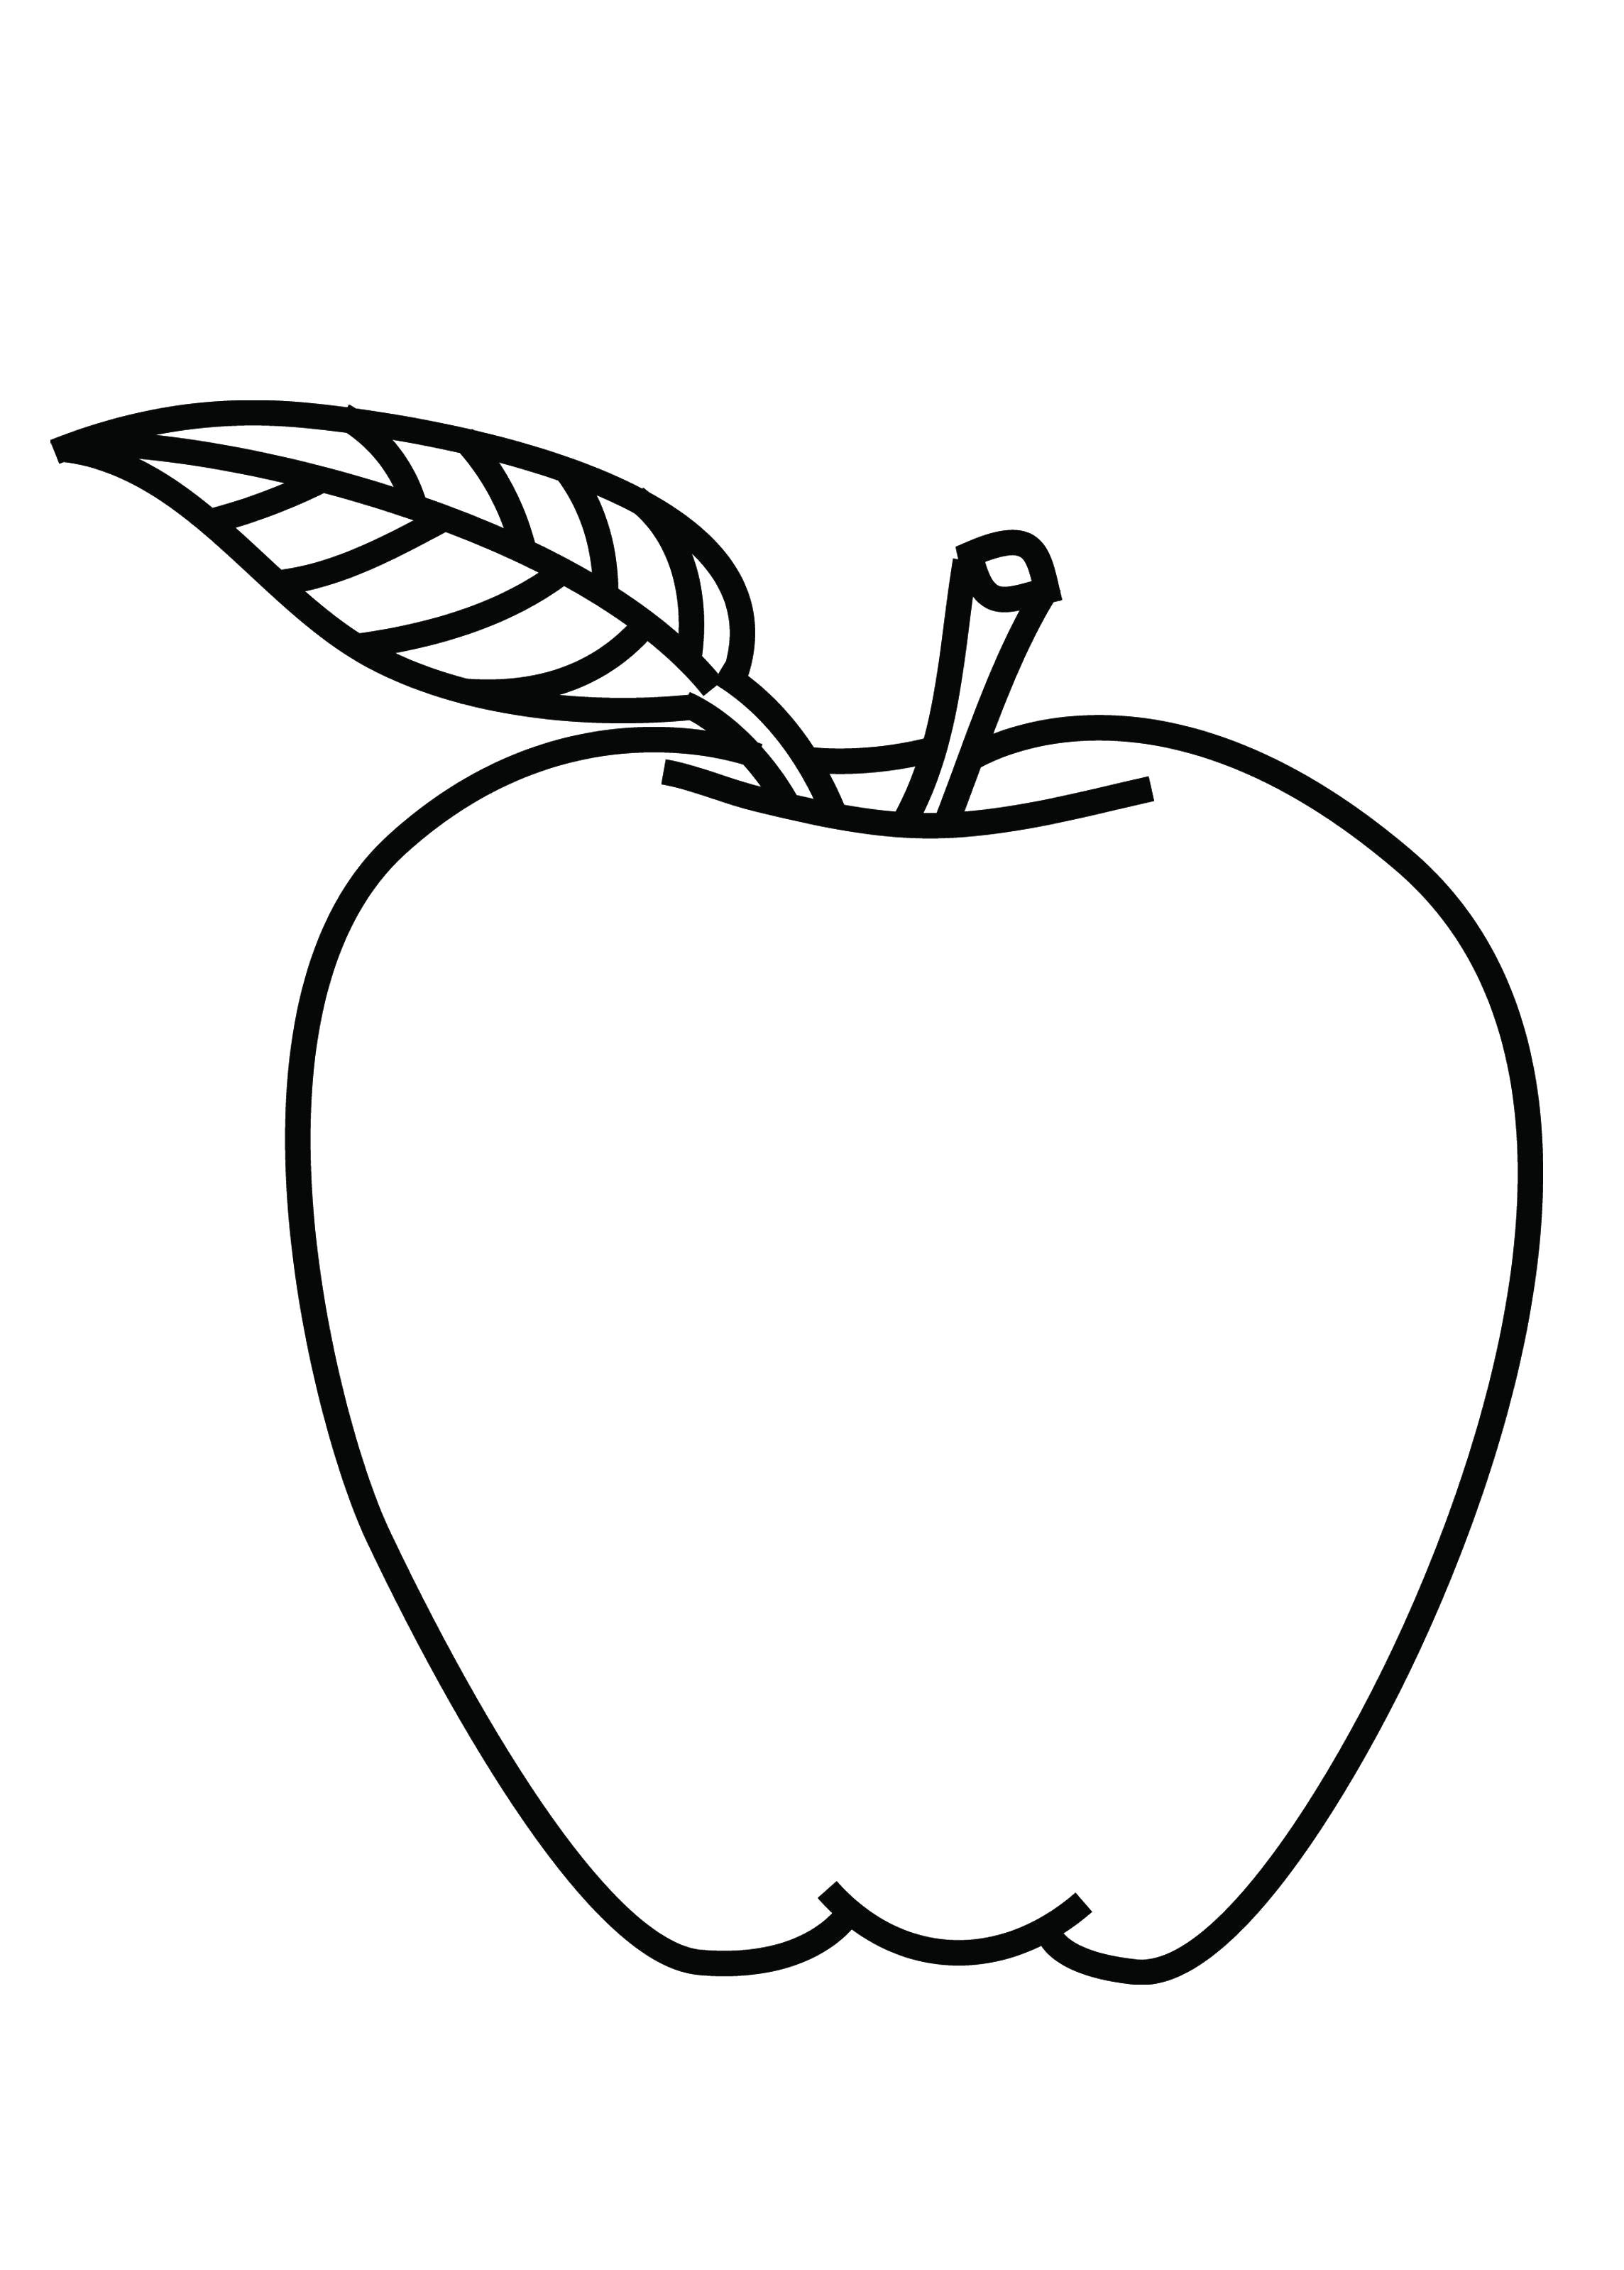 pictures of apples to color apple coloring pages fotolipcom rich image and wallpaper apples color to pictures of